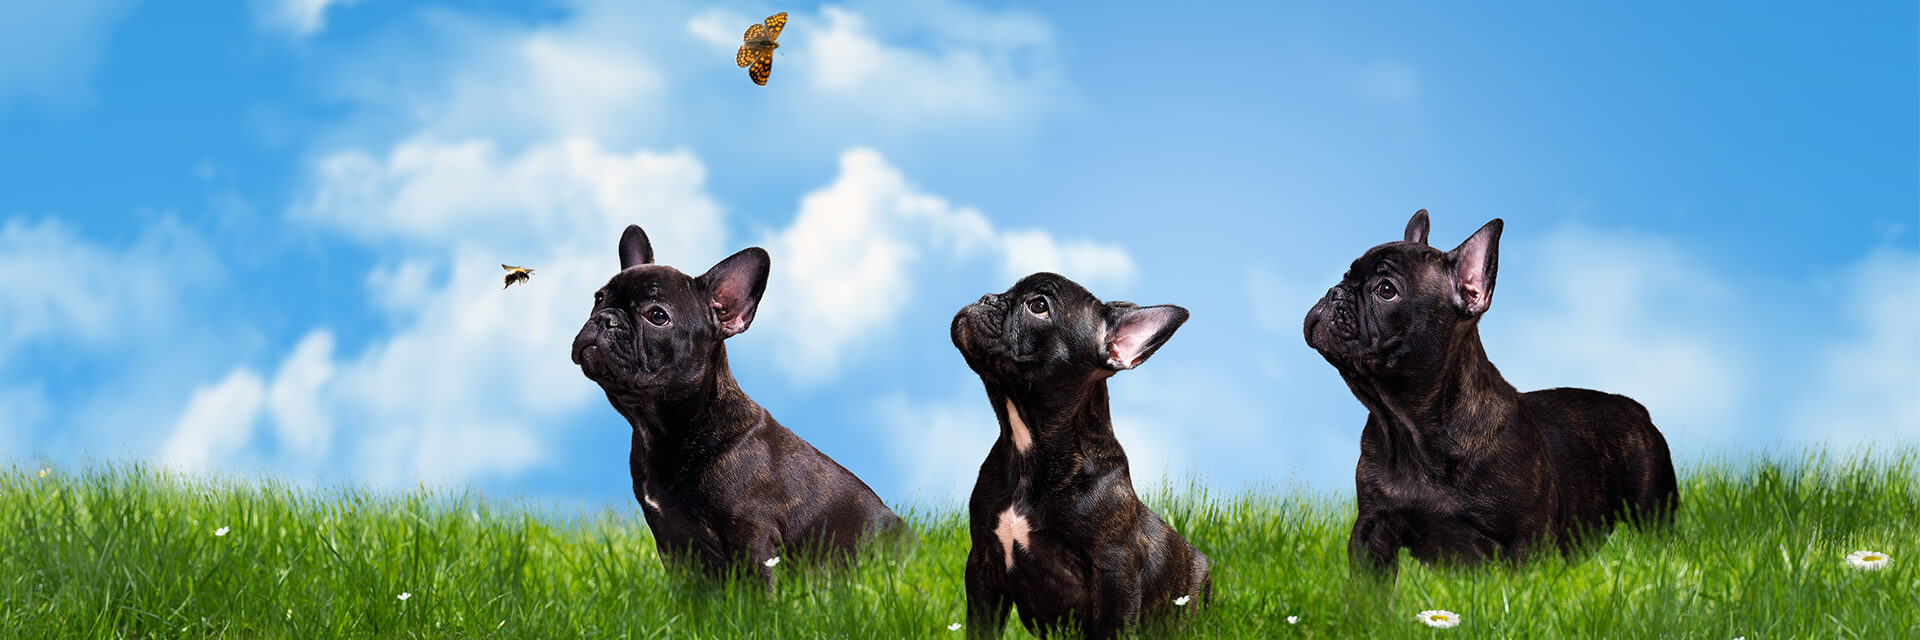 3 puppy dogs in field looking at bee and butterfly